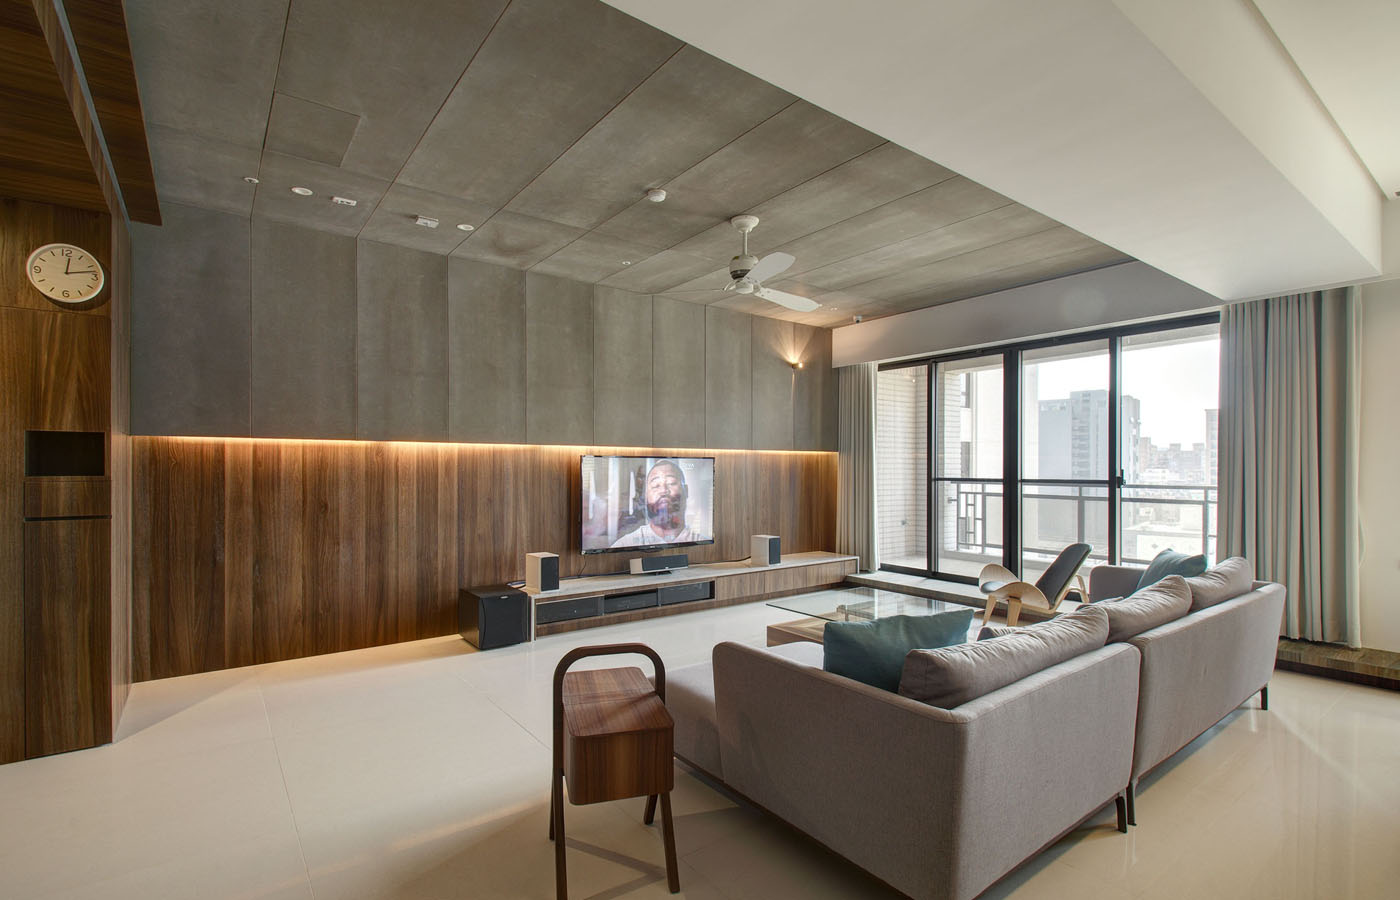 Modern apartment designs by phase6 design studio - Interior designs ...